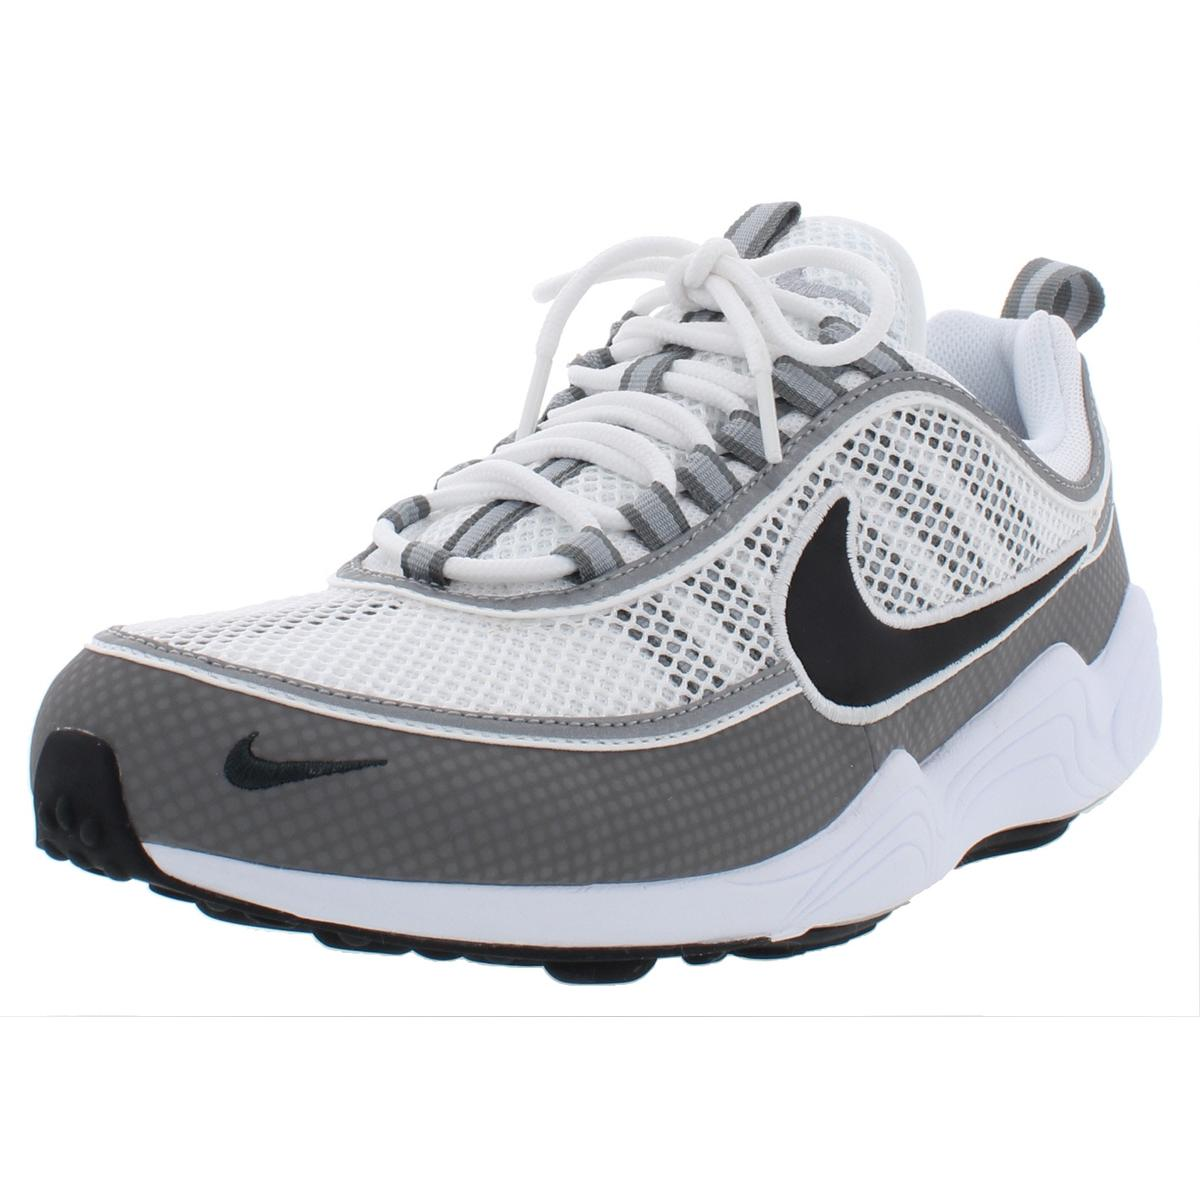 new style 92e05 2b32b Details about Nike Mens Nike Air Zoom Breathable Workout Running Shoes  Sneakers BHFO 3543